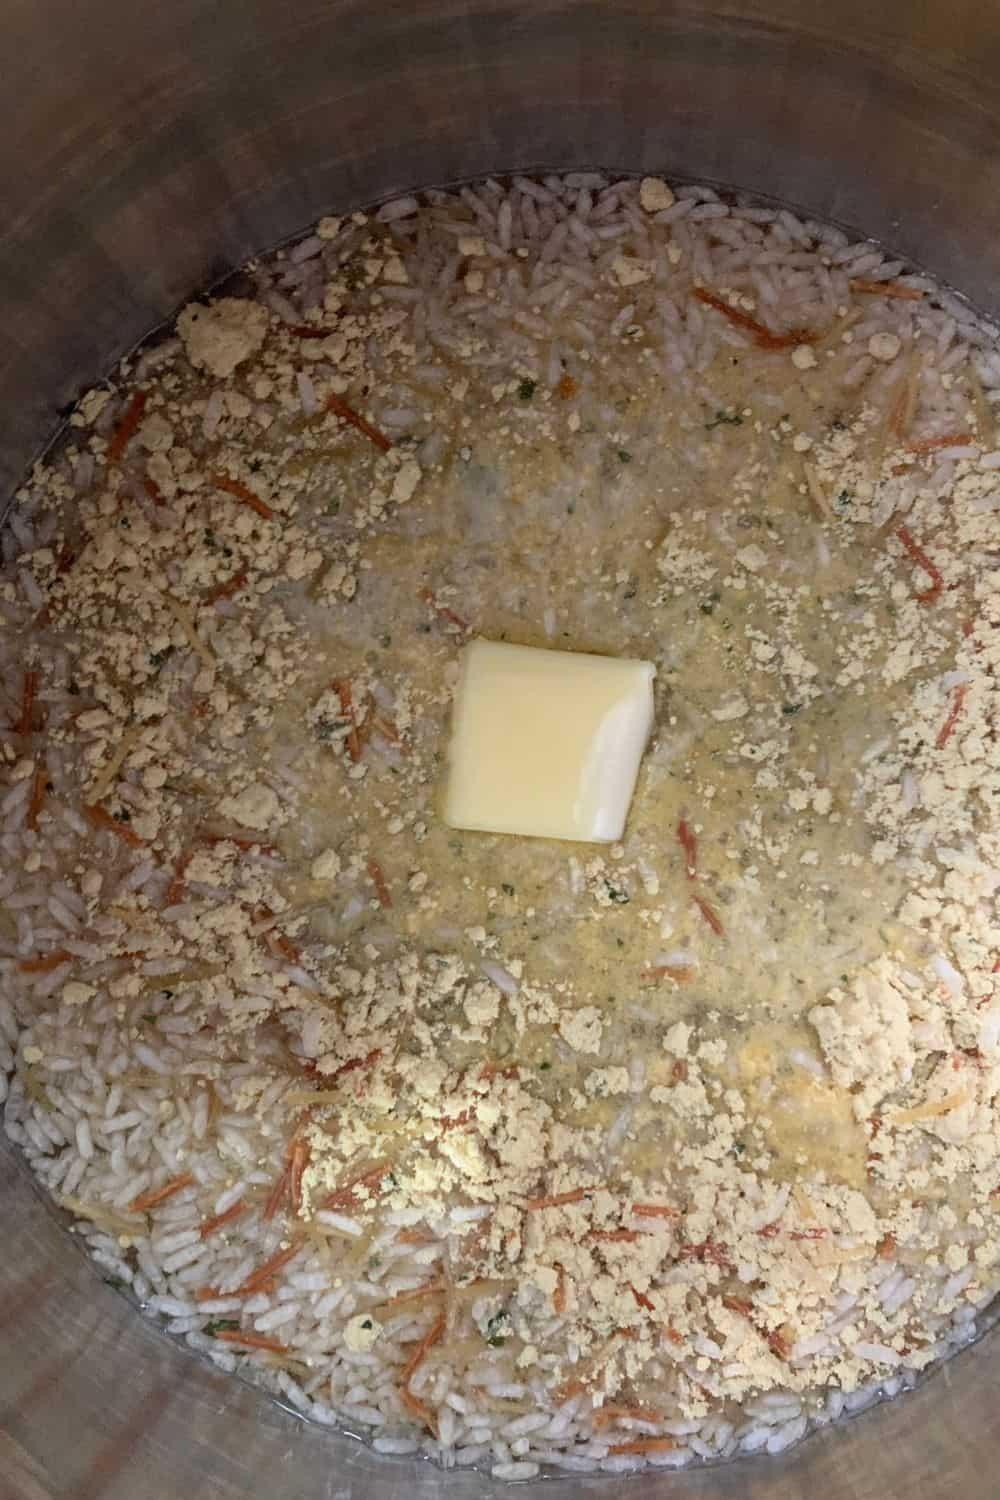 Knorr Rice Sides in the Instant Pot with water and butter, ready to be pressure cooked